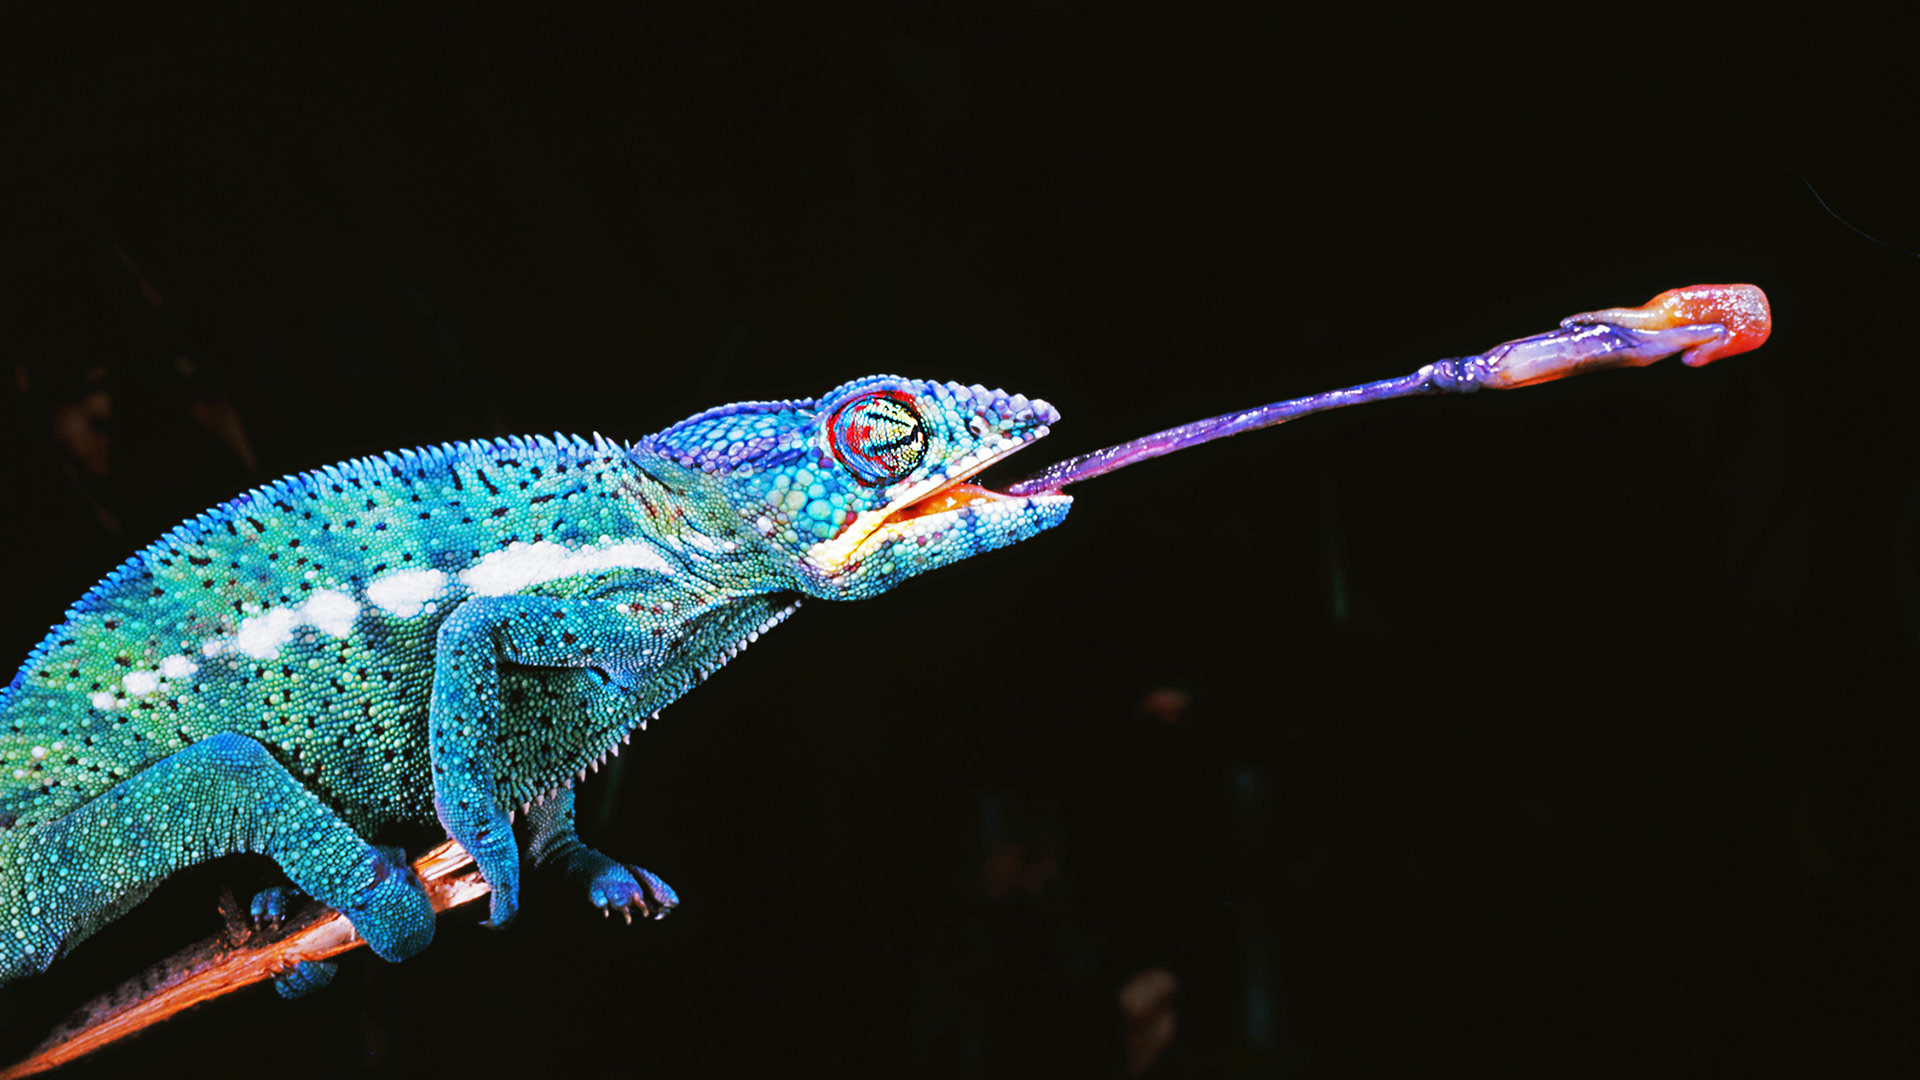 Chameleon catching prey